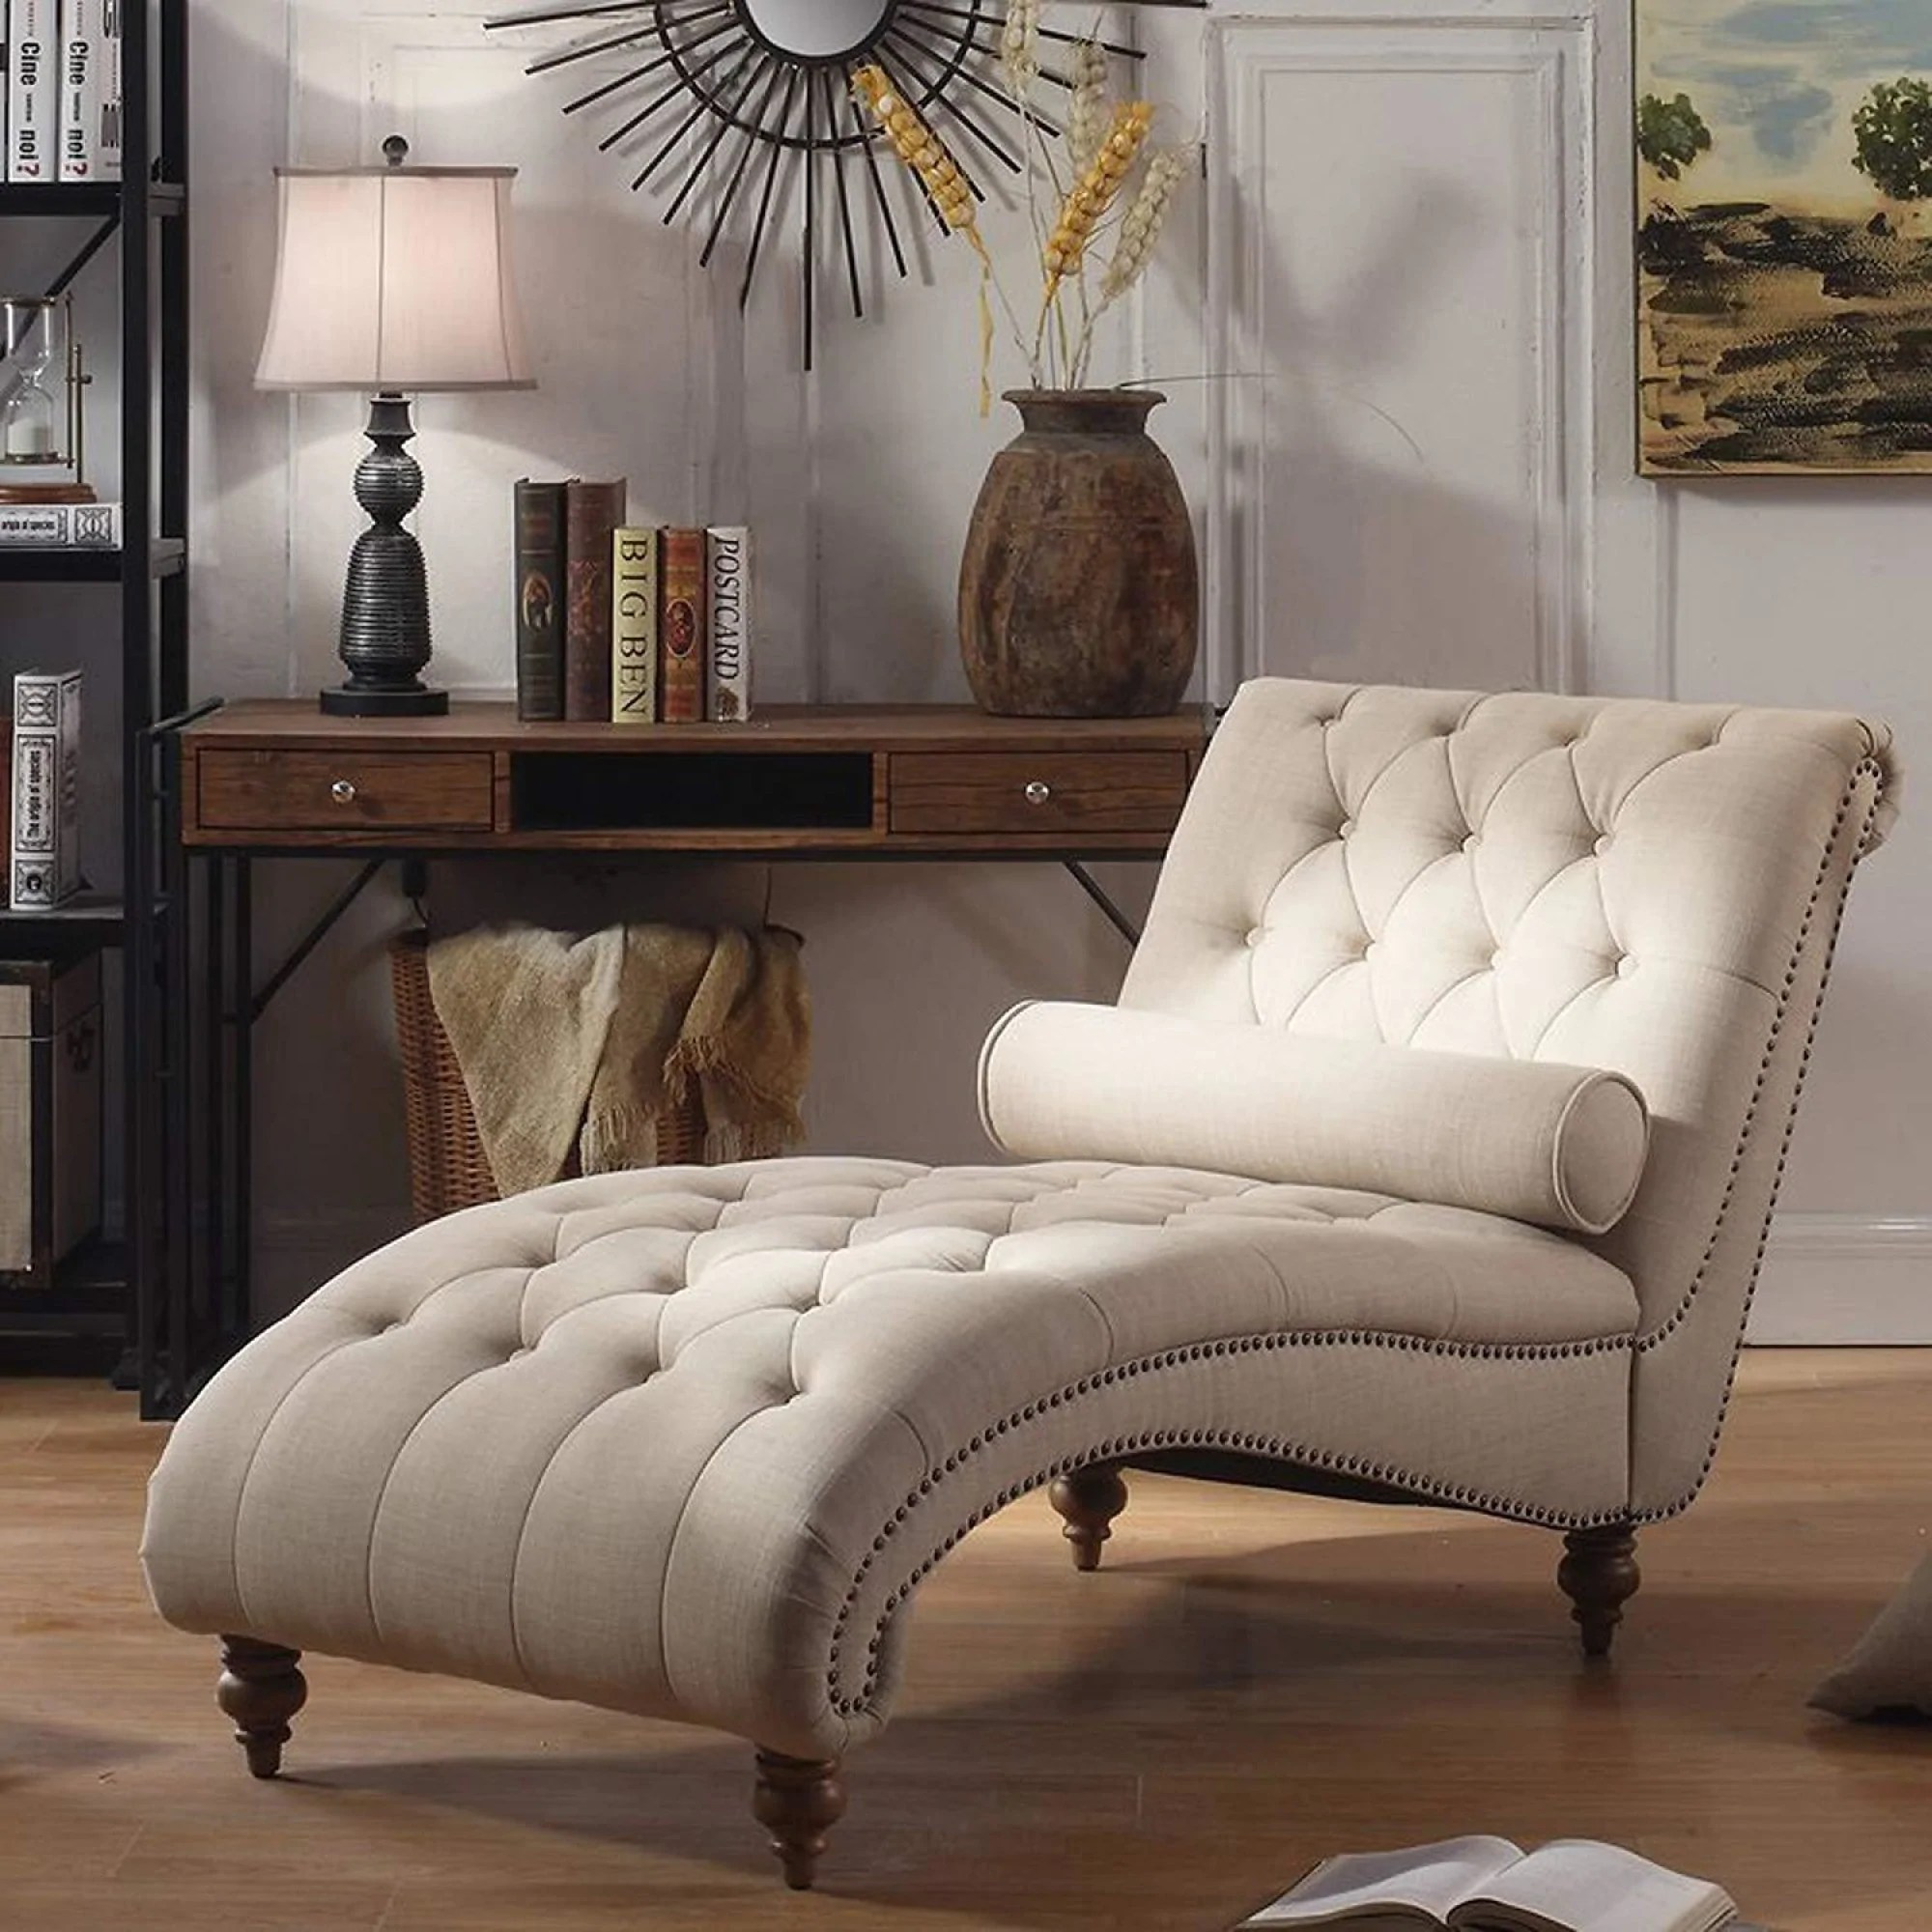 Luxorious Indoor Chaise Lounge Chair Contemporary Tufted